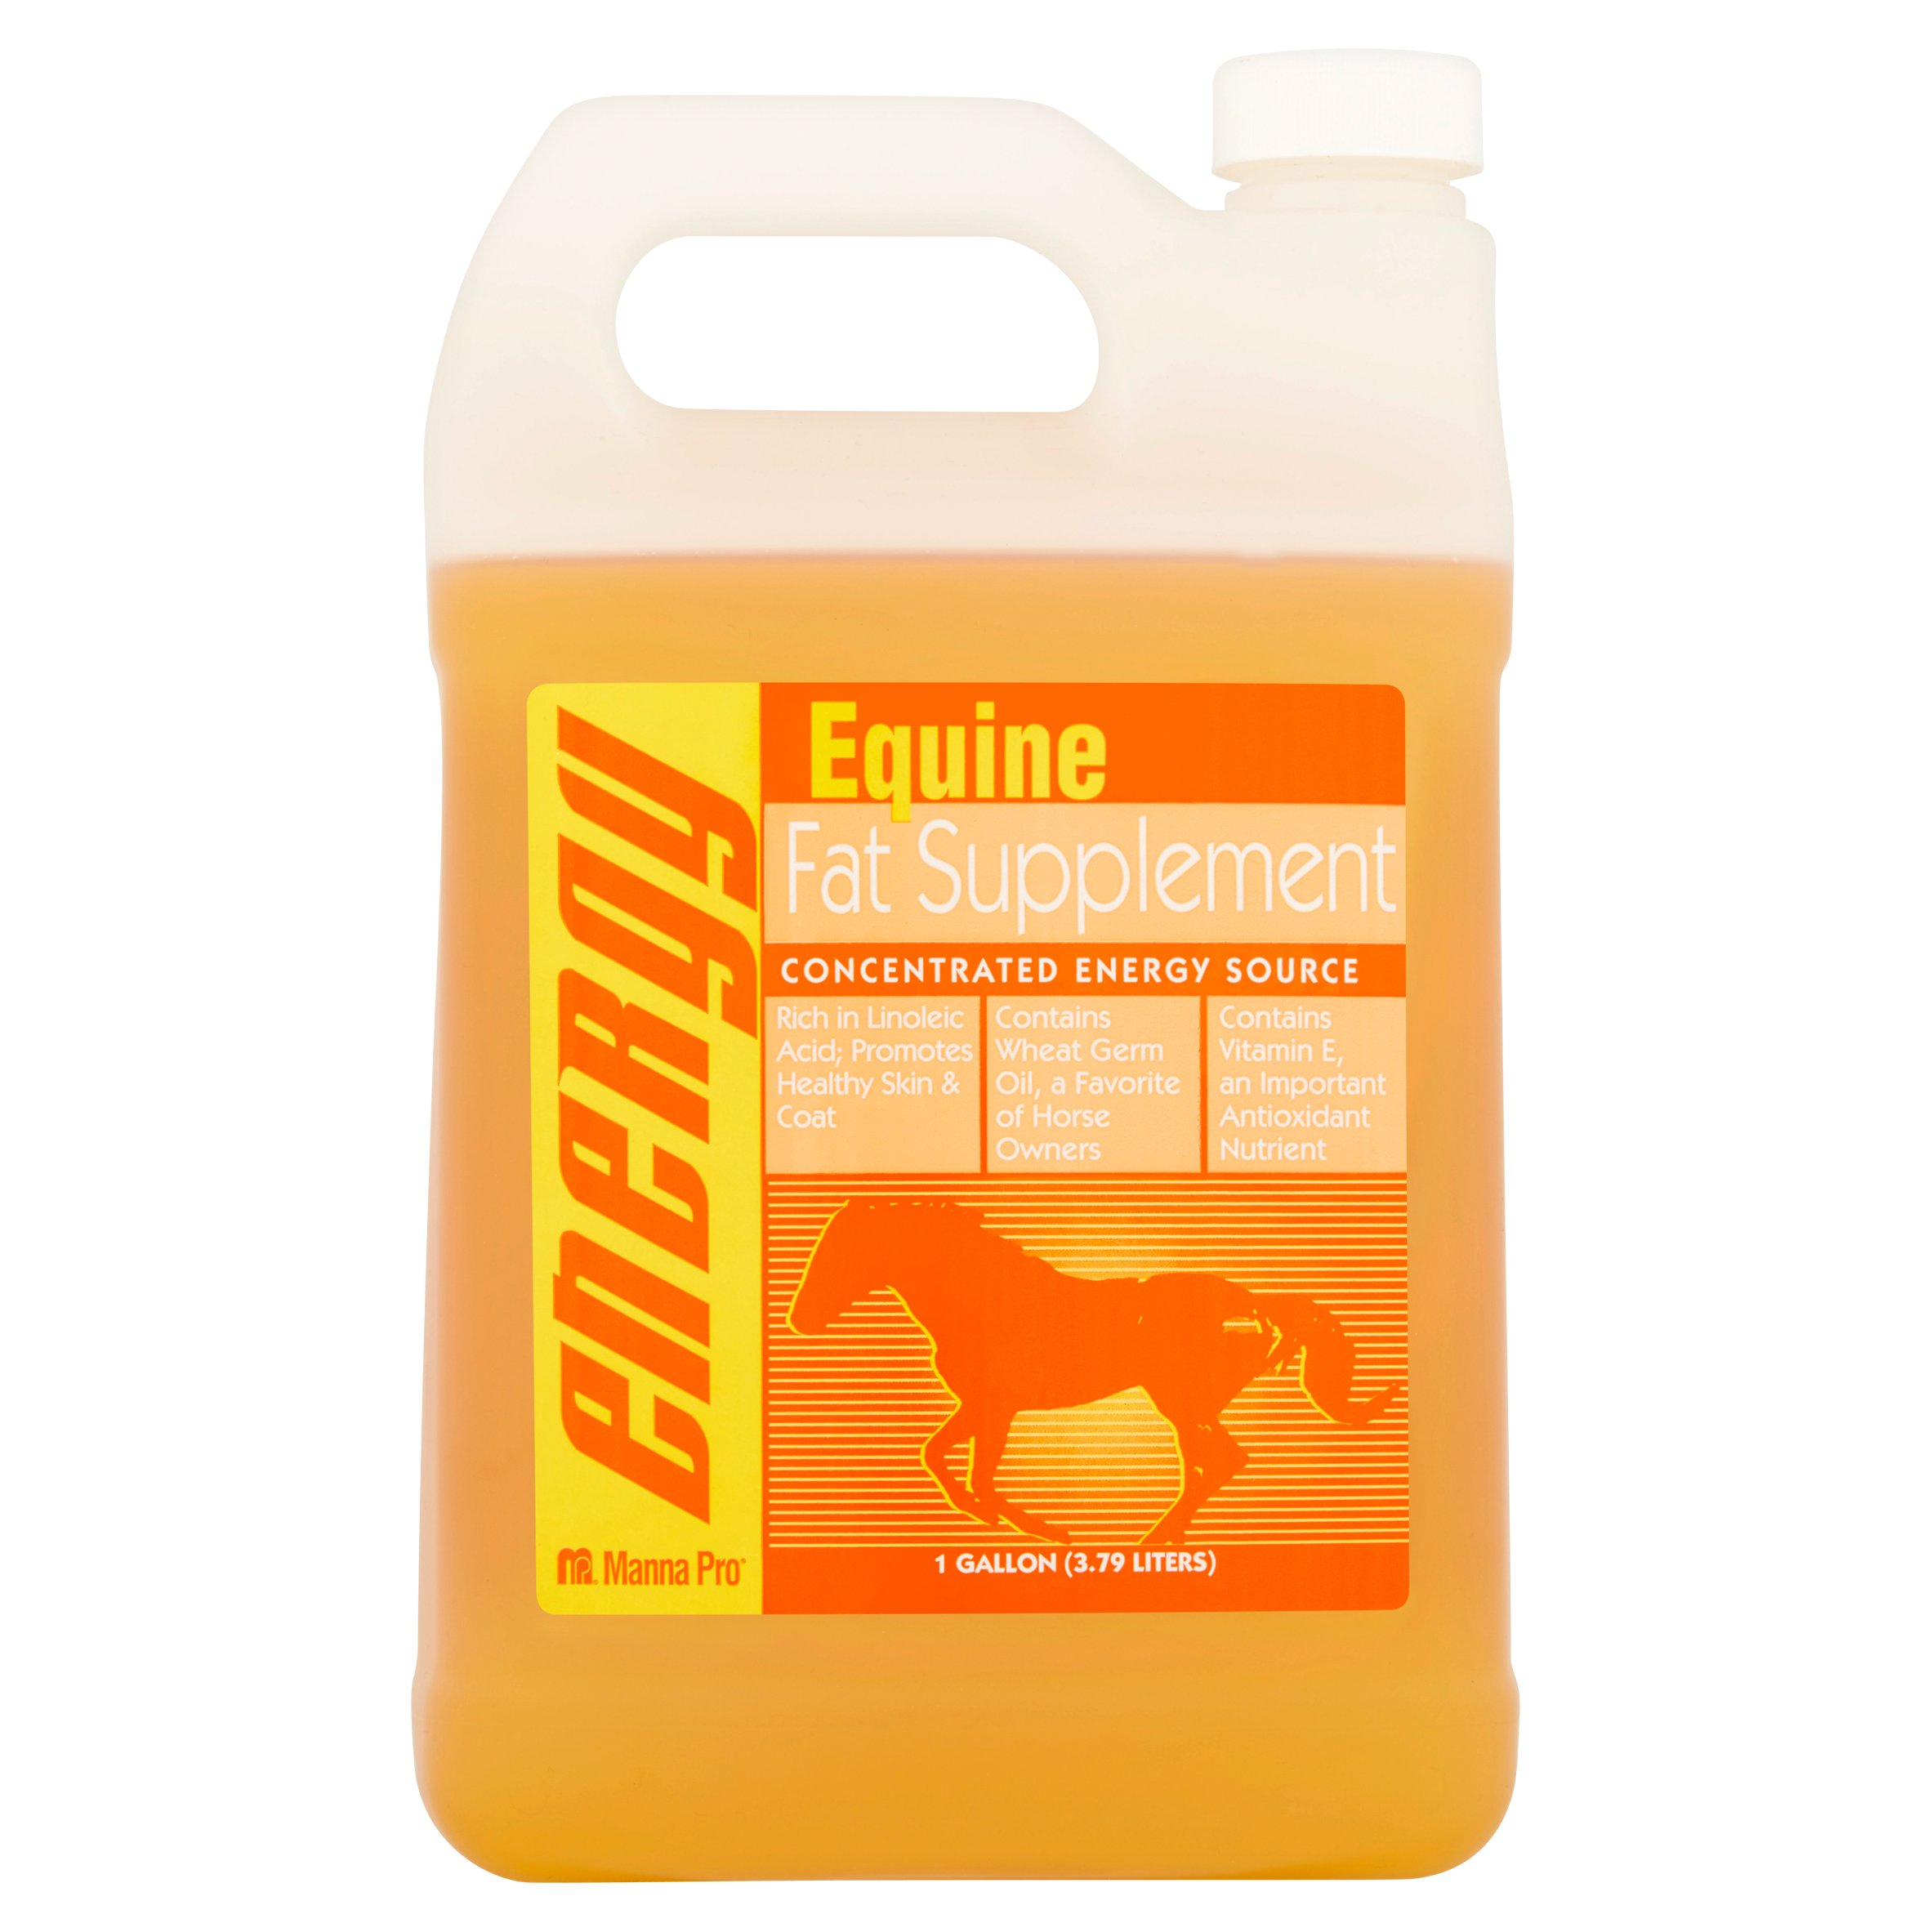 Manna Pro Concentrated Energy Source Equine Fat Supplement, 1 gallon